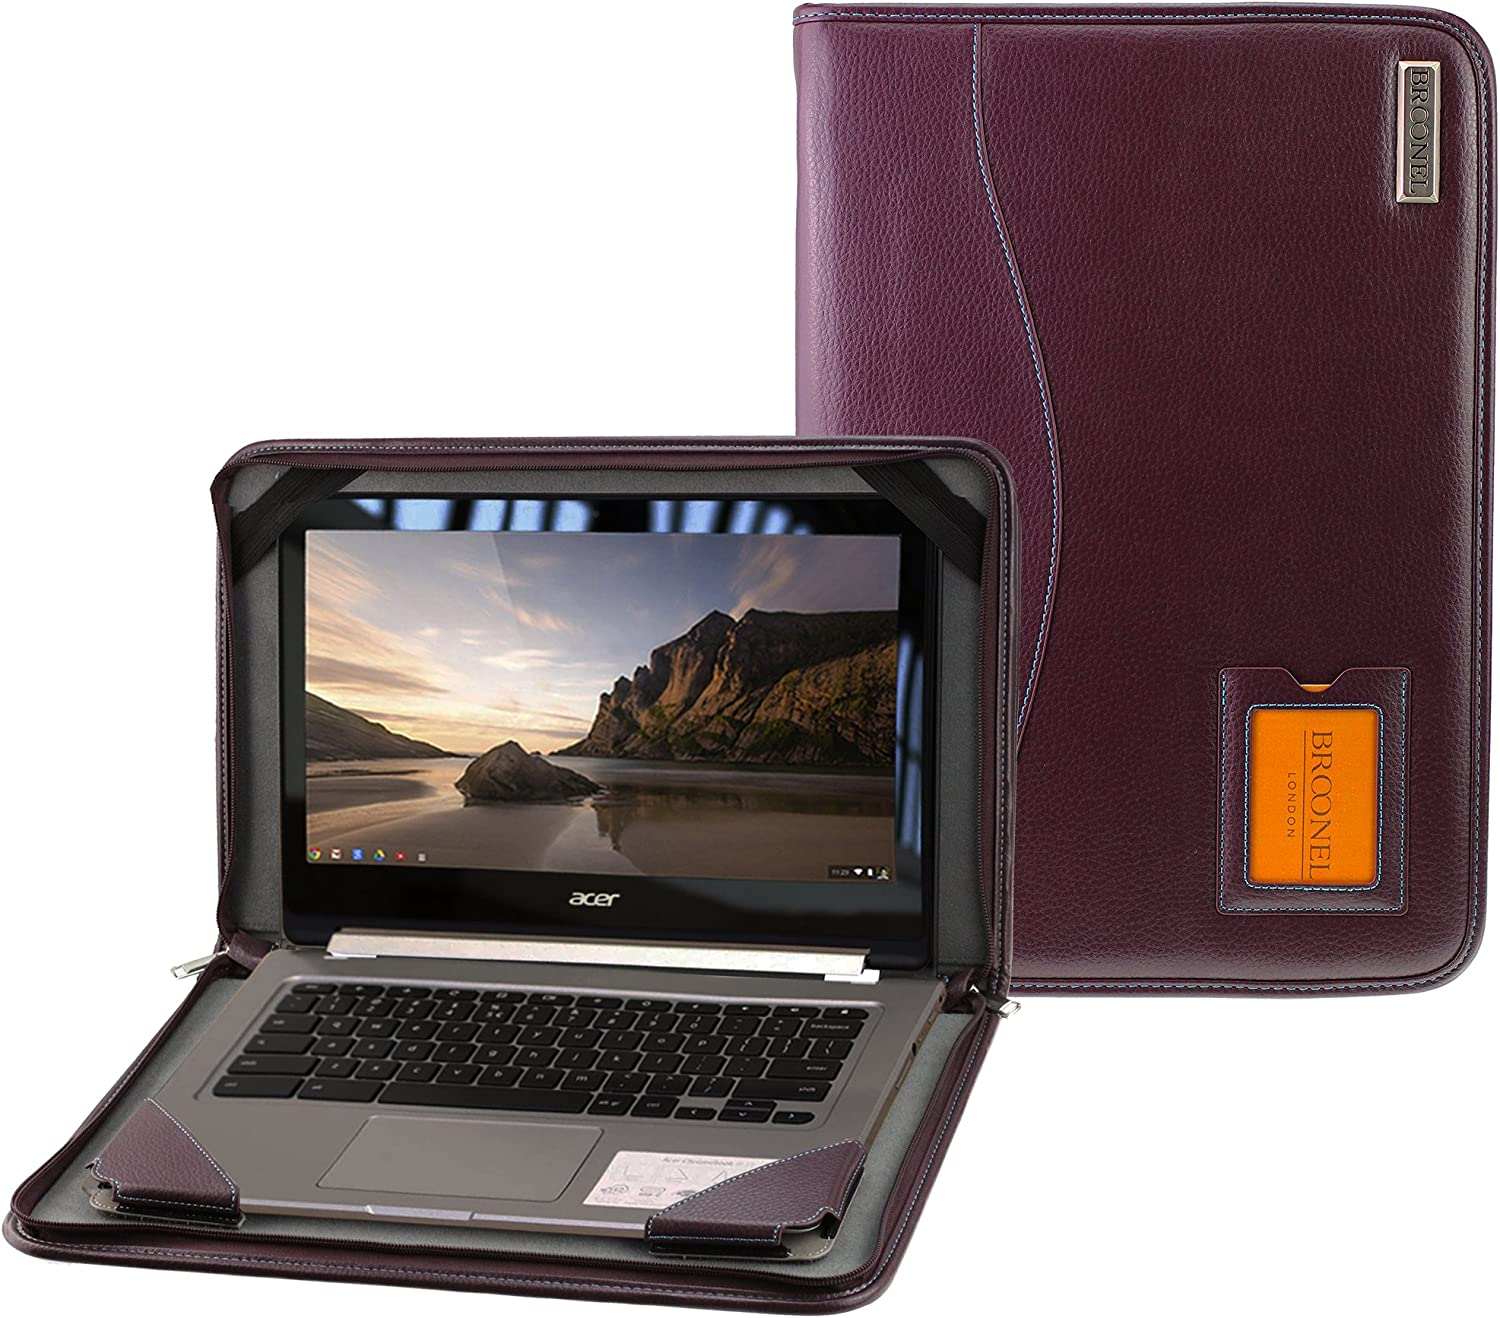 Broonel - Contour Series - Purple Heavy Duty Vegan Leather Protective Case Cover Compatible with The Acer Chromebook R13